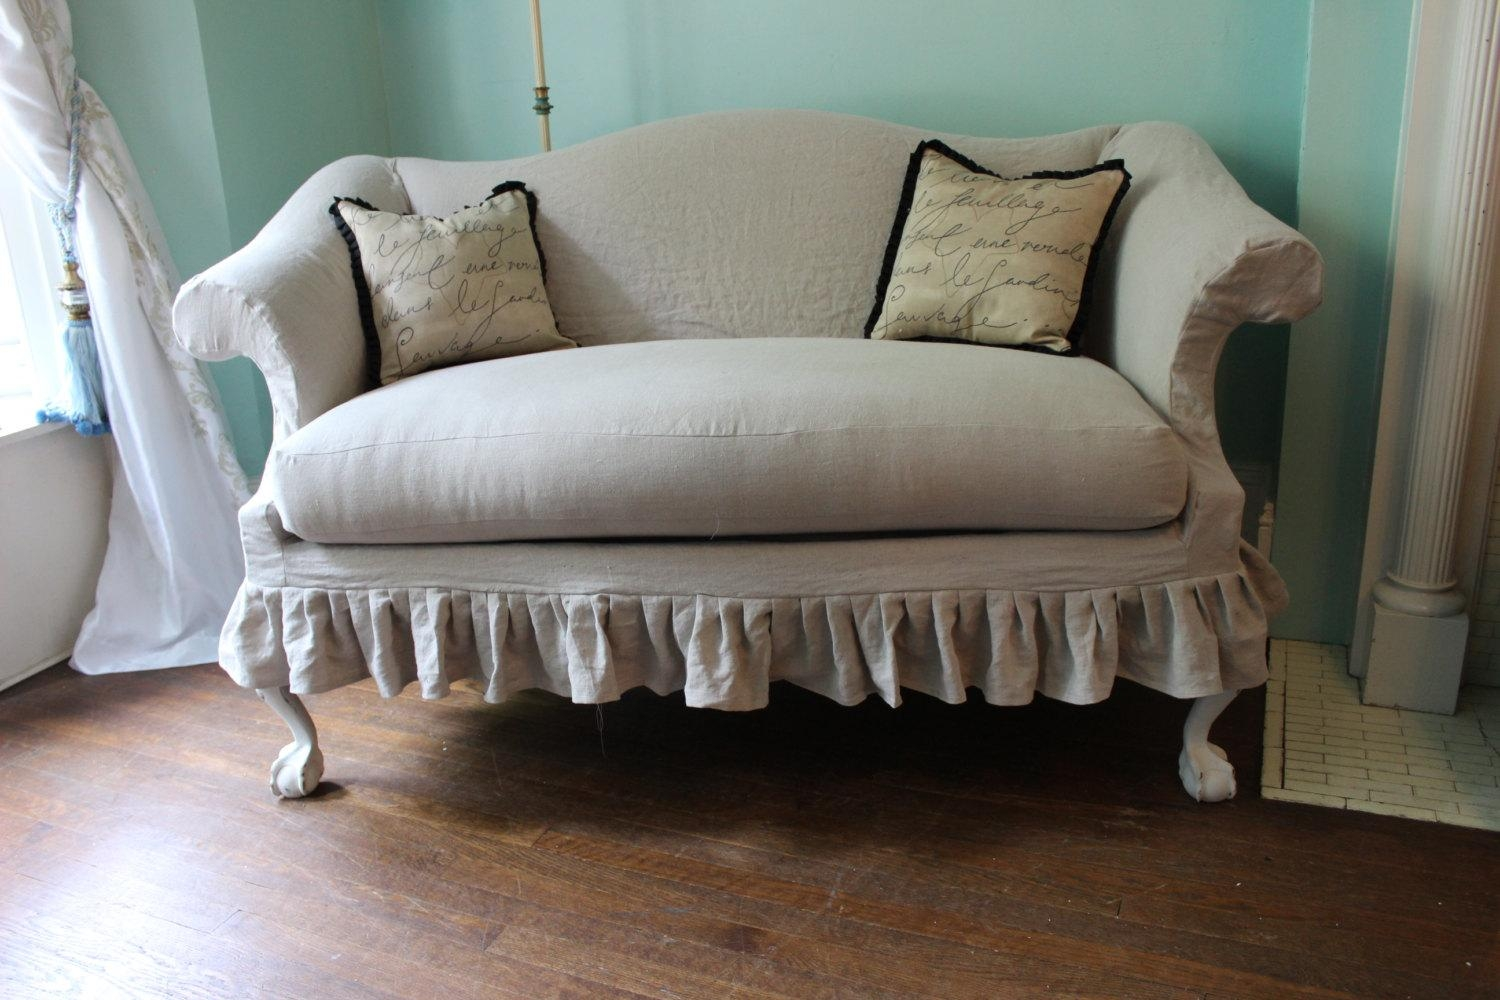 Old Reclining Loveseat Slipcover With White Color 2 Cushions And Intended For Sofa Loveseat Slipcovers (Image 21 of 25)